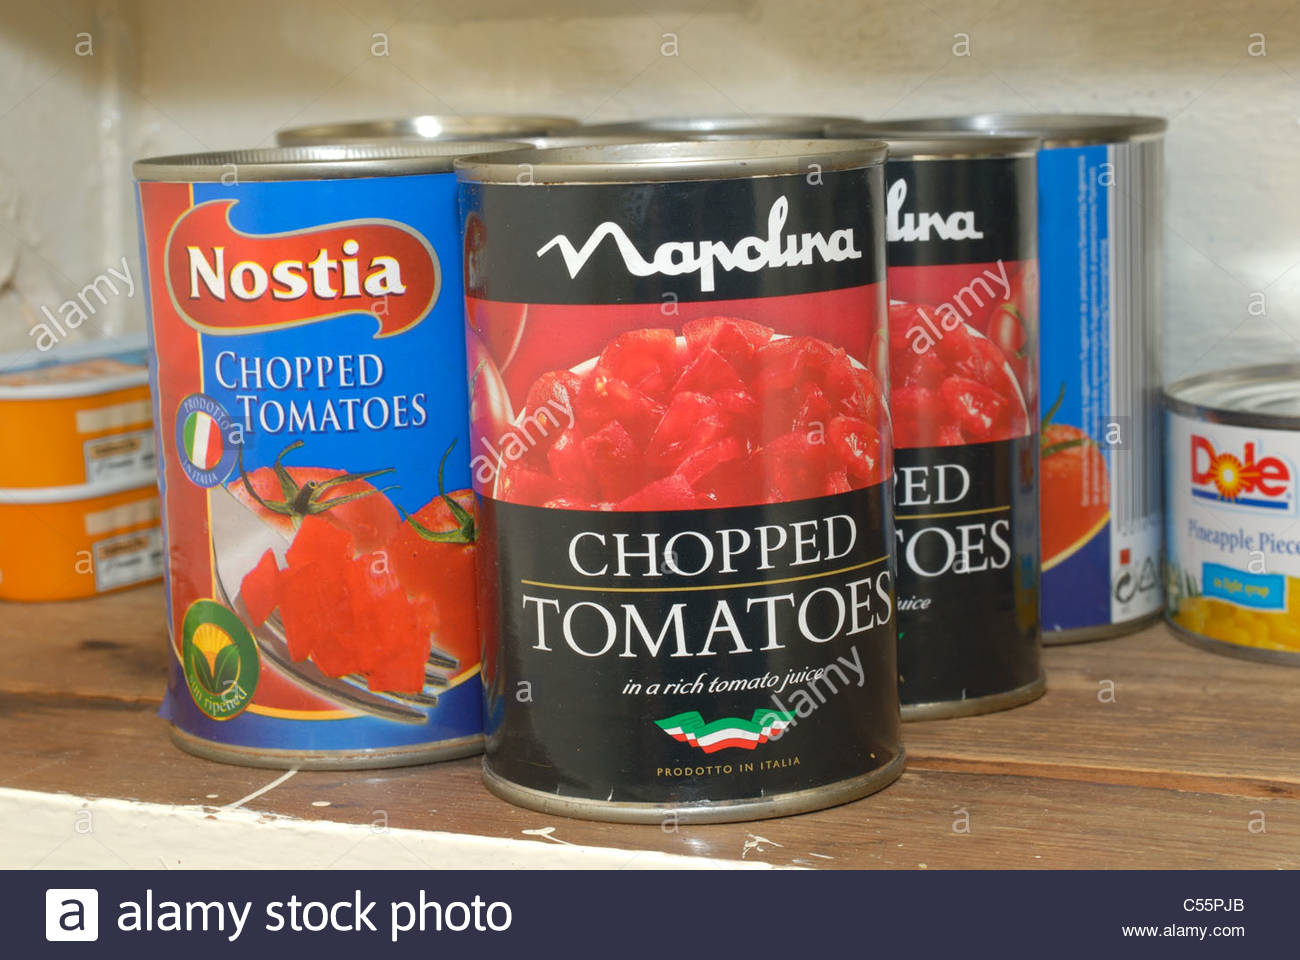 Tins of chopped tomatoes in a suburban larder. - Stock Image